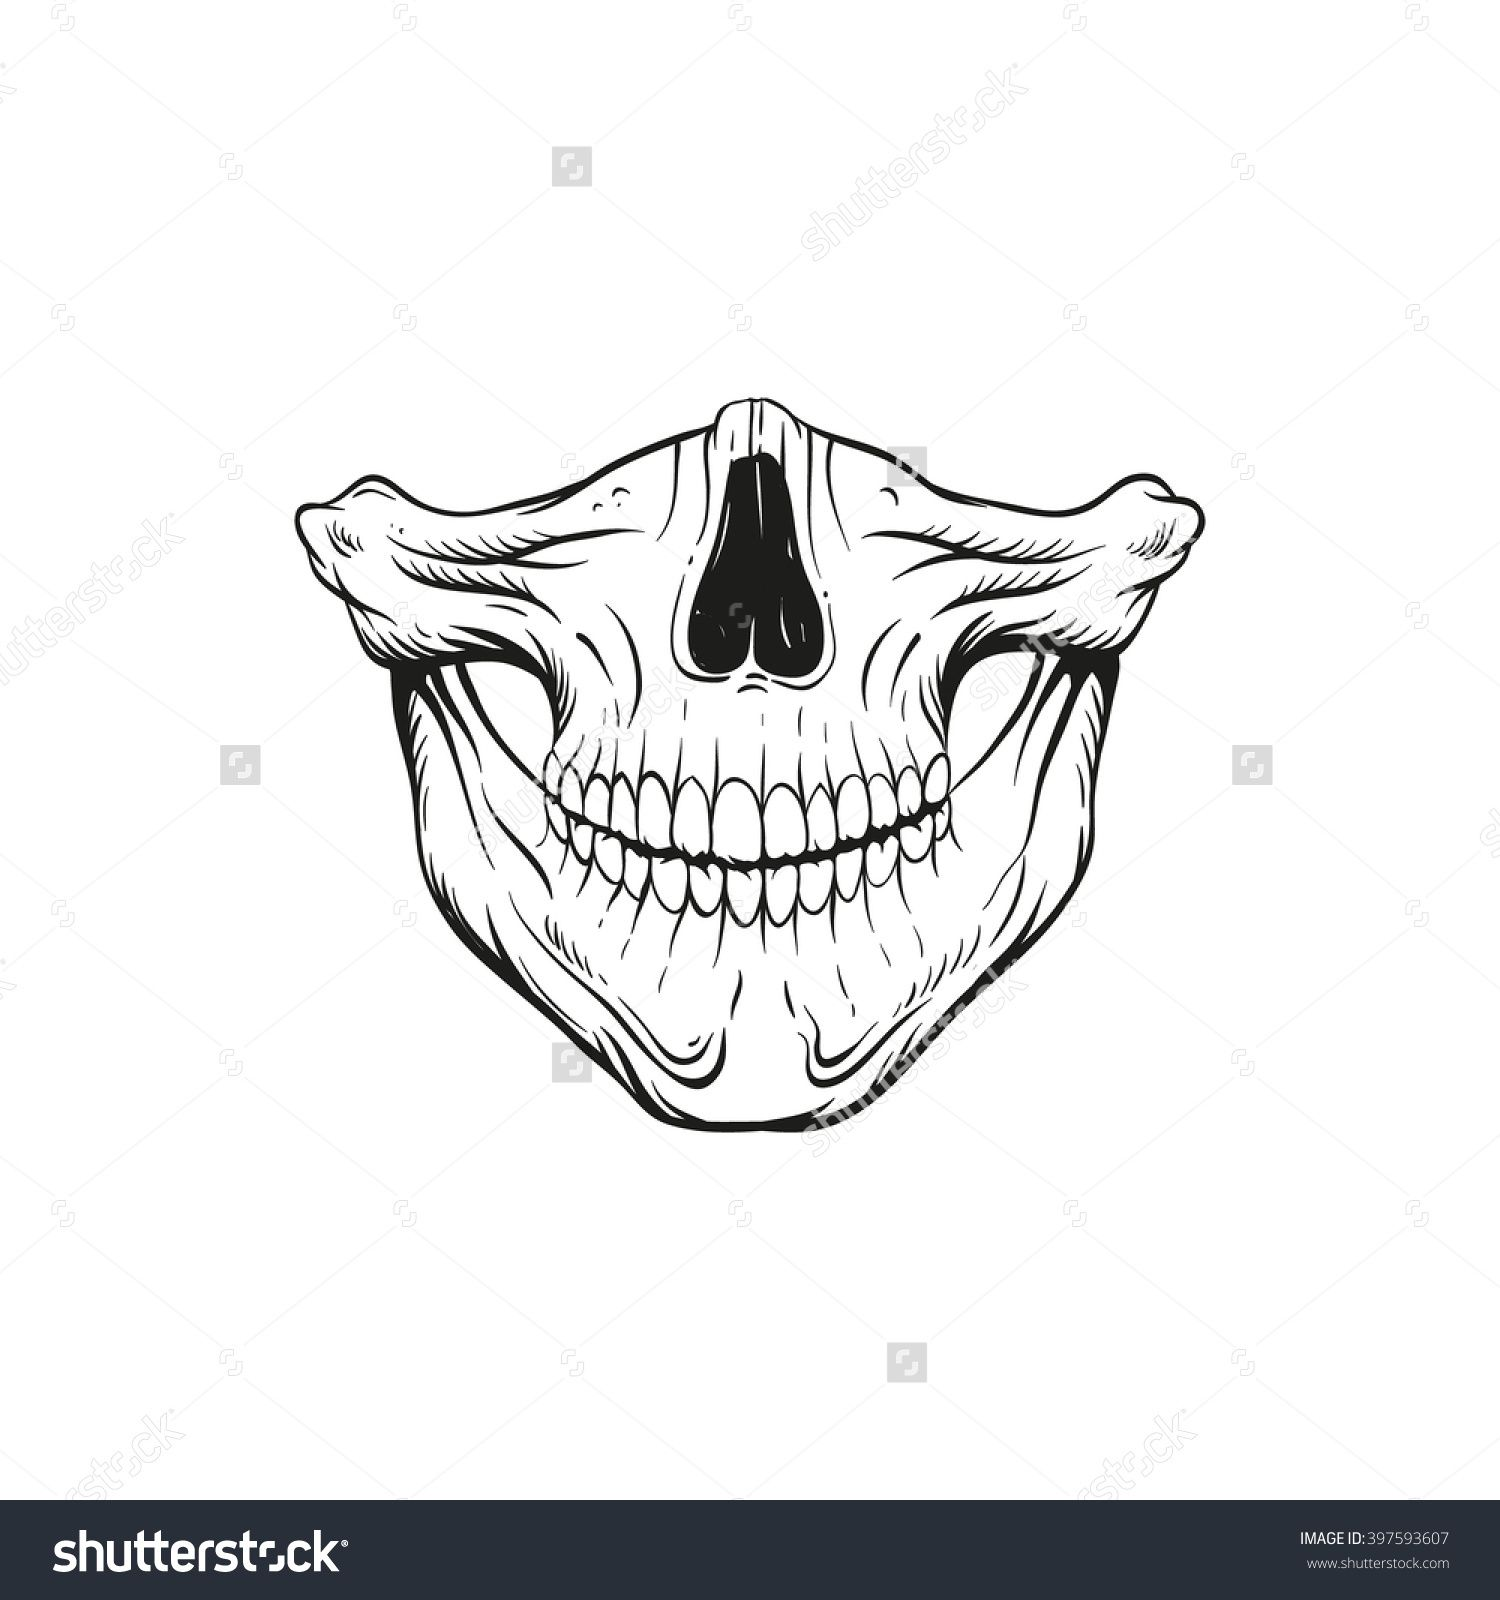 Skull Jaw Sketch Tattoo Design. Hand Drawn Vector